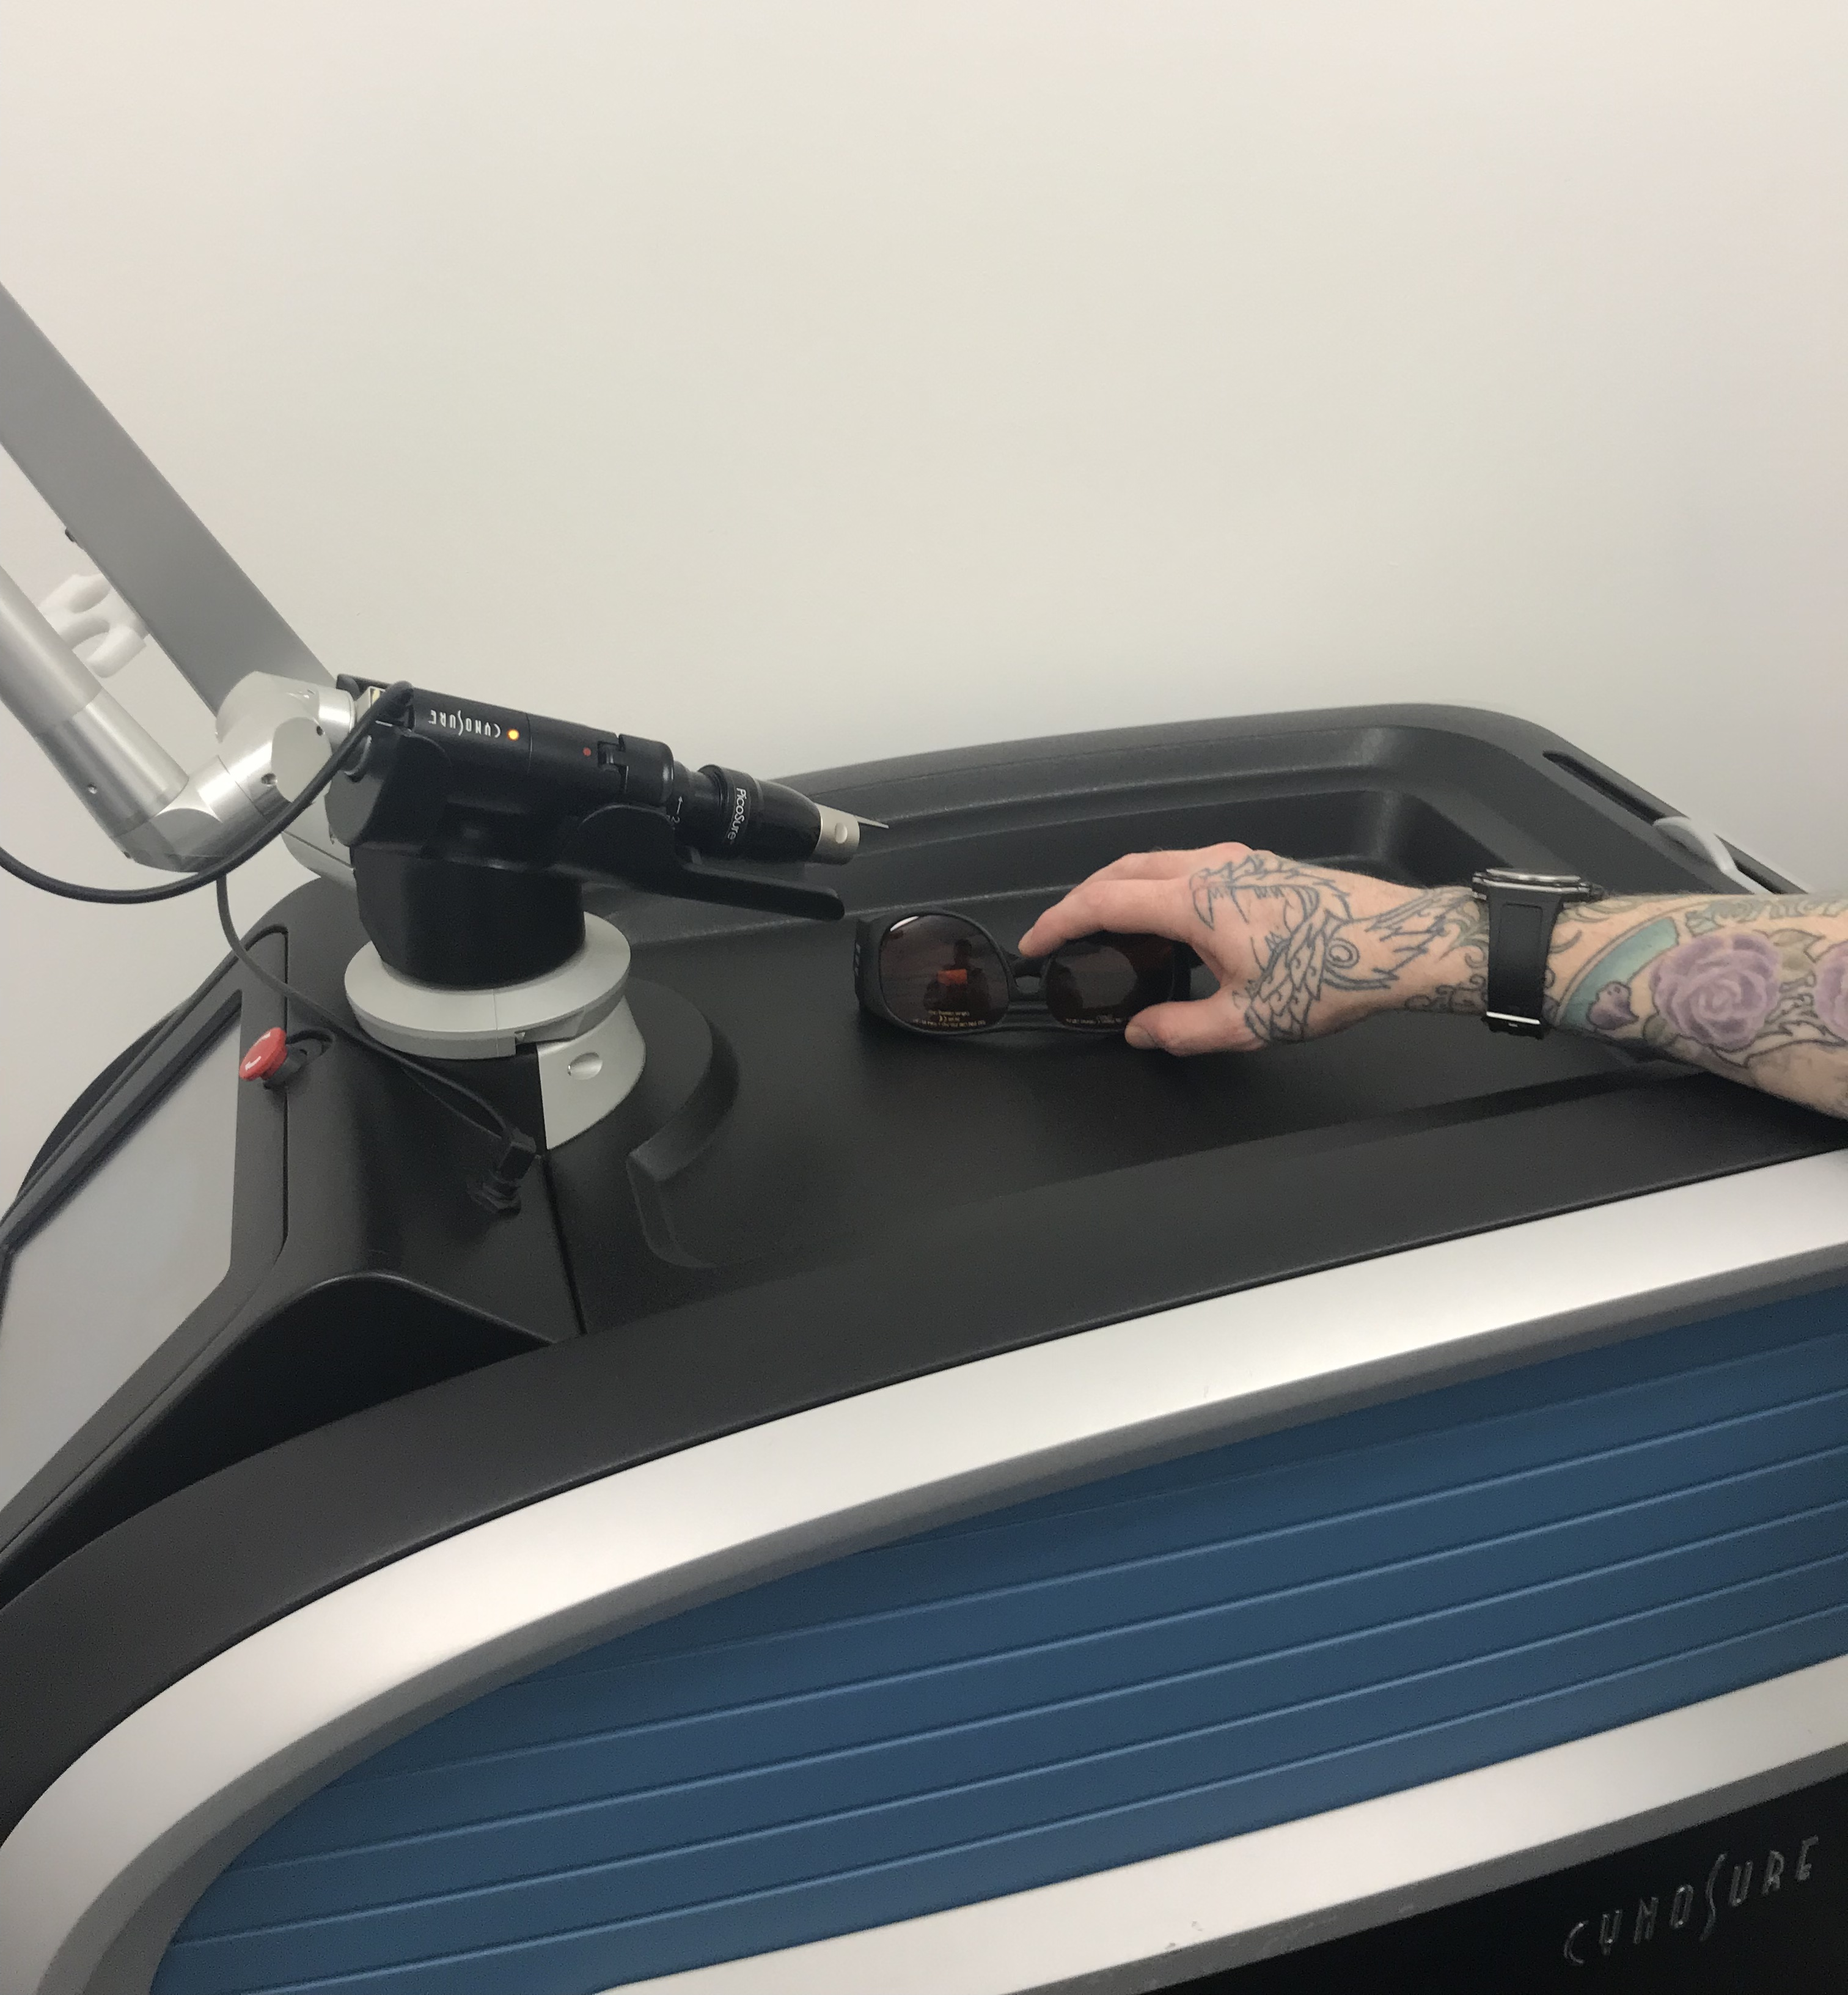 Tattoo removal machine, a laser used to remove the tattoo from the skin.